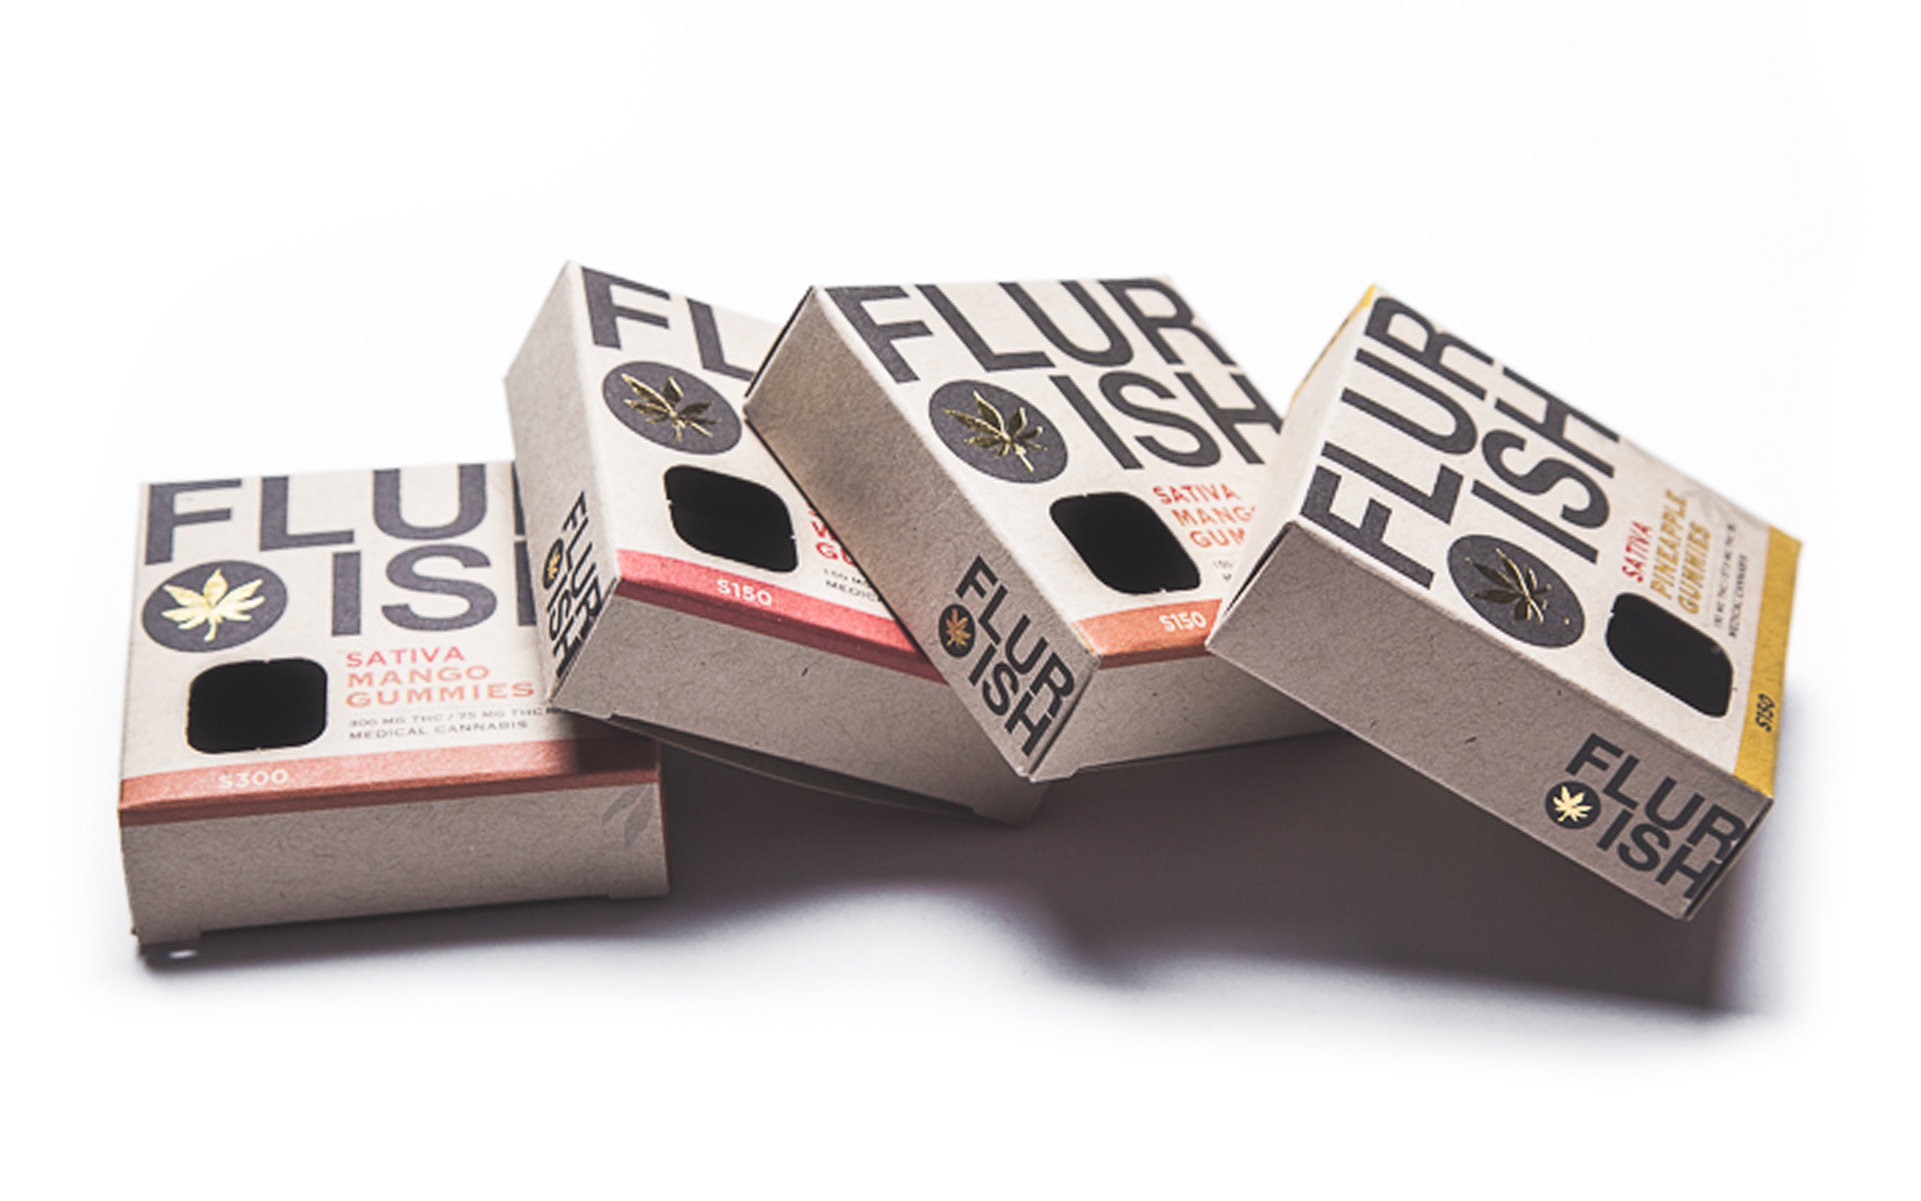 Product Review: Flurish Cannabis-Infused Gummy Edibles